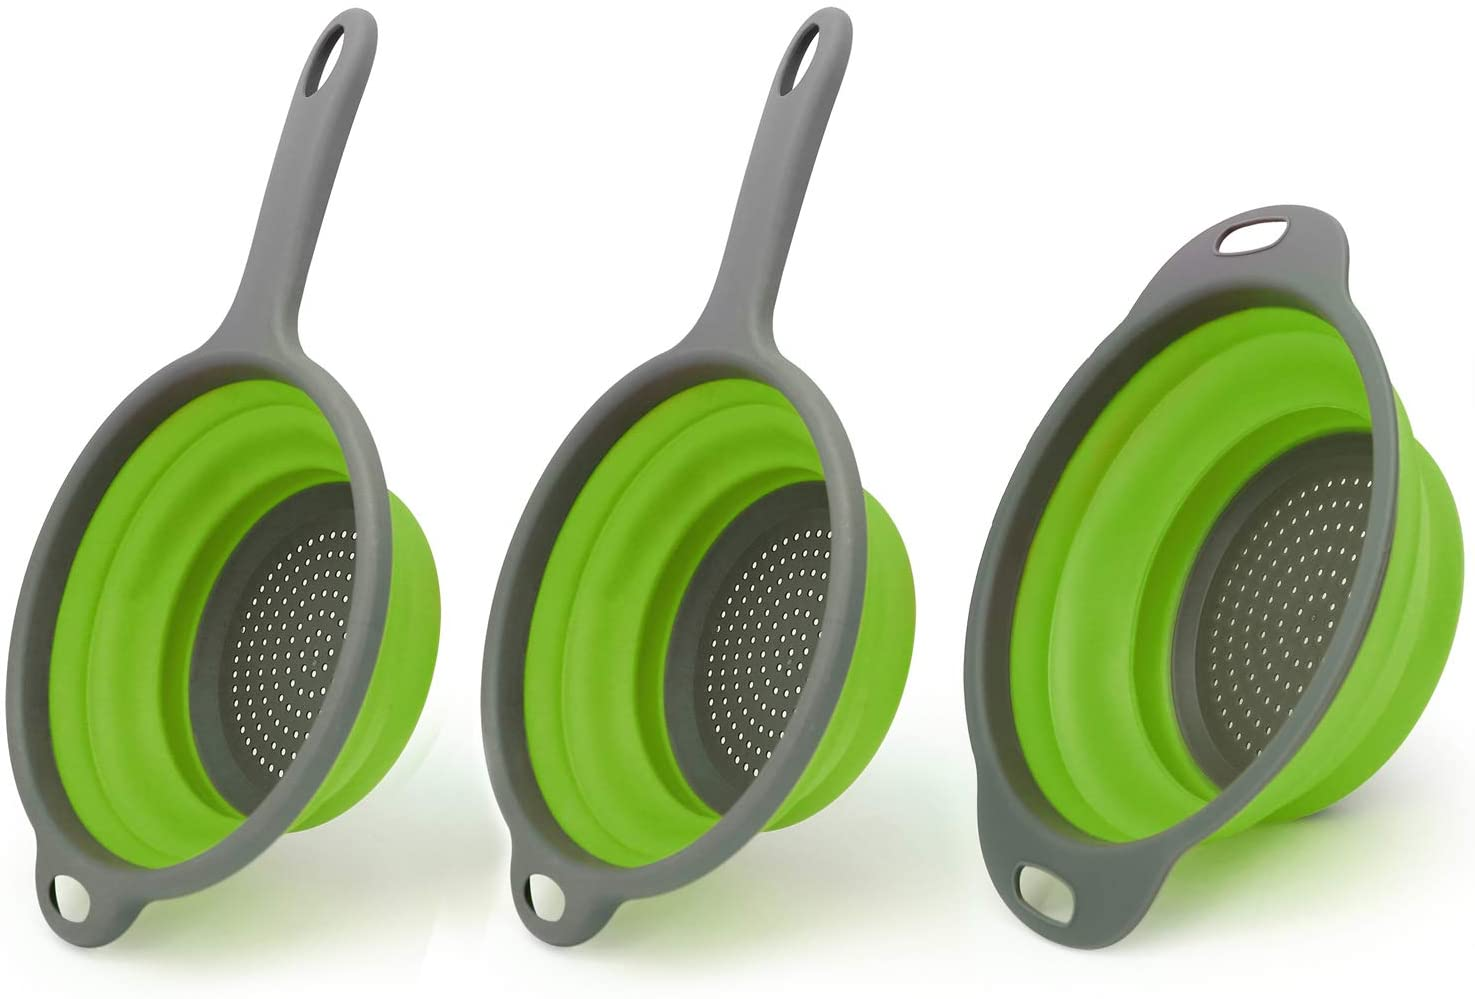 TOPULORS Set of 3 Collapsible Colanders, Kitchen Foldable Strainer with Sturdy Plastic Base, Best for Rinsing or Draining Pasta, Vegetables and Fruits-Green